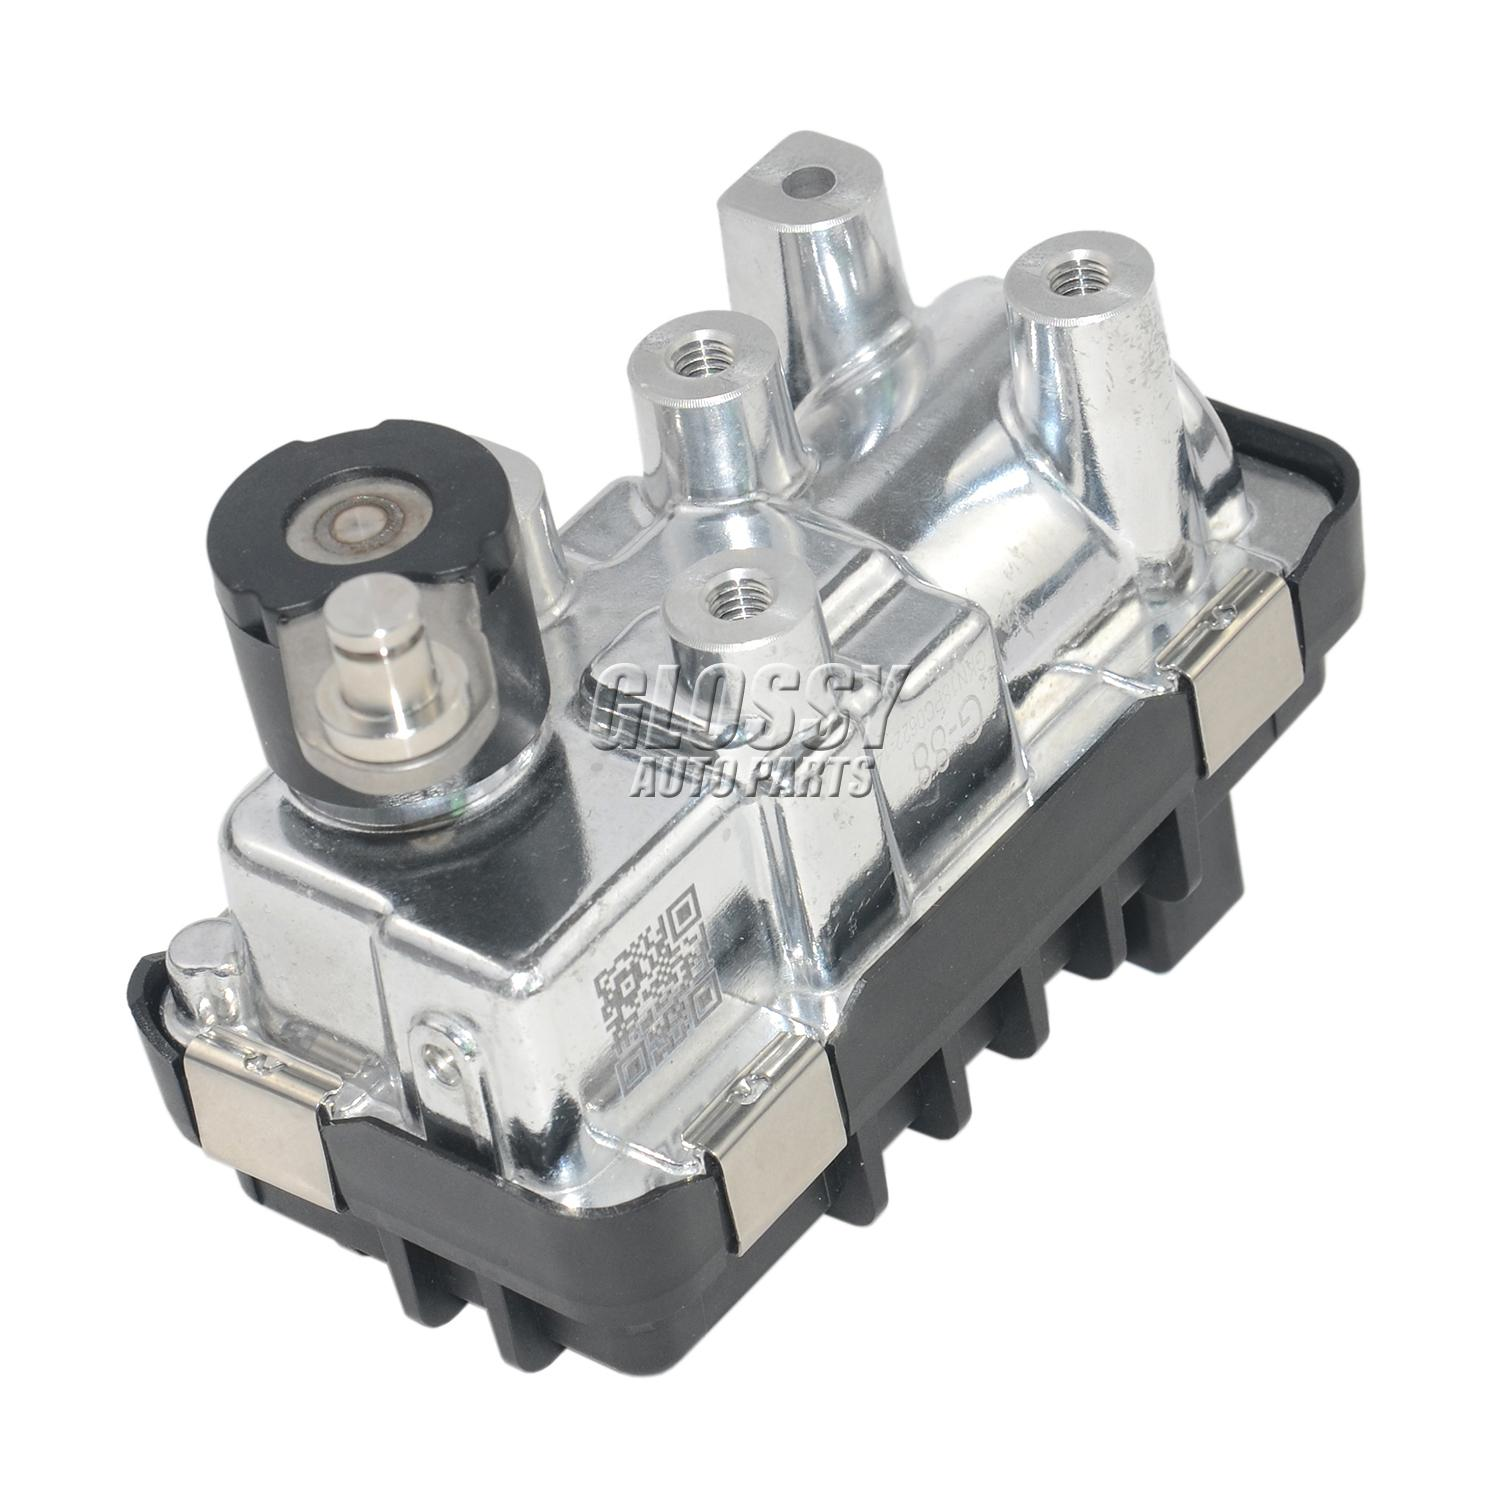 AP02 New Turbo Electric Actuator 730314 G-88 6NW009228 For Mercedes C,E,M,R,S,CLK,GL ML320 GL320 R320 320 CDI <font><b>OM642</b></font> image